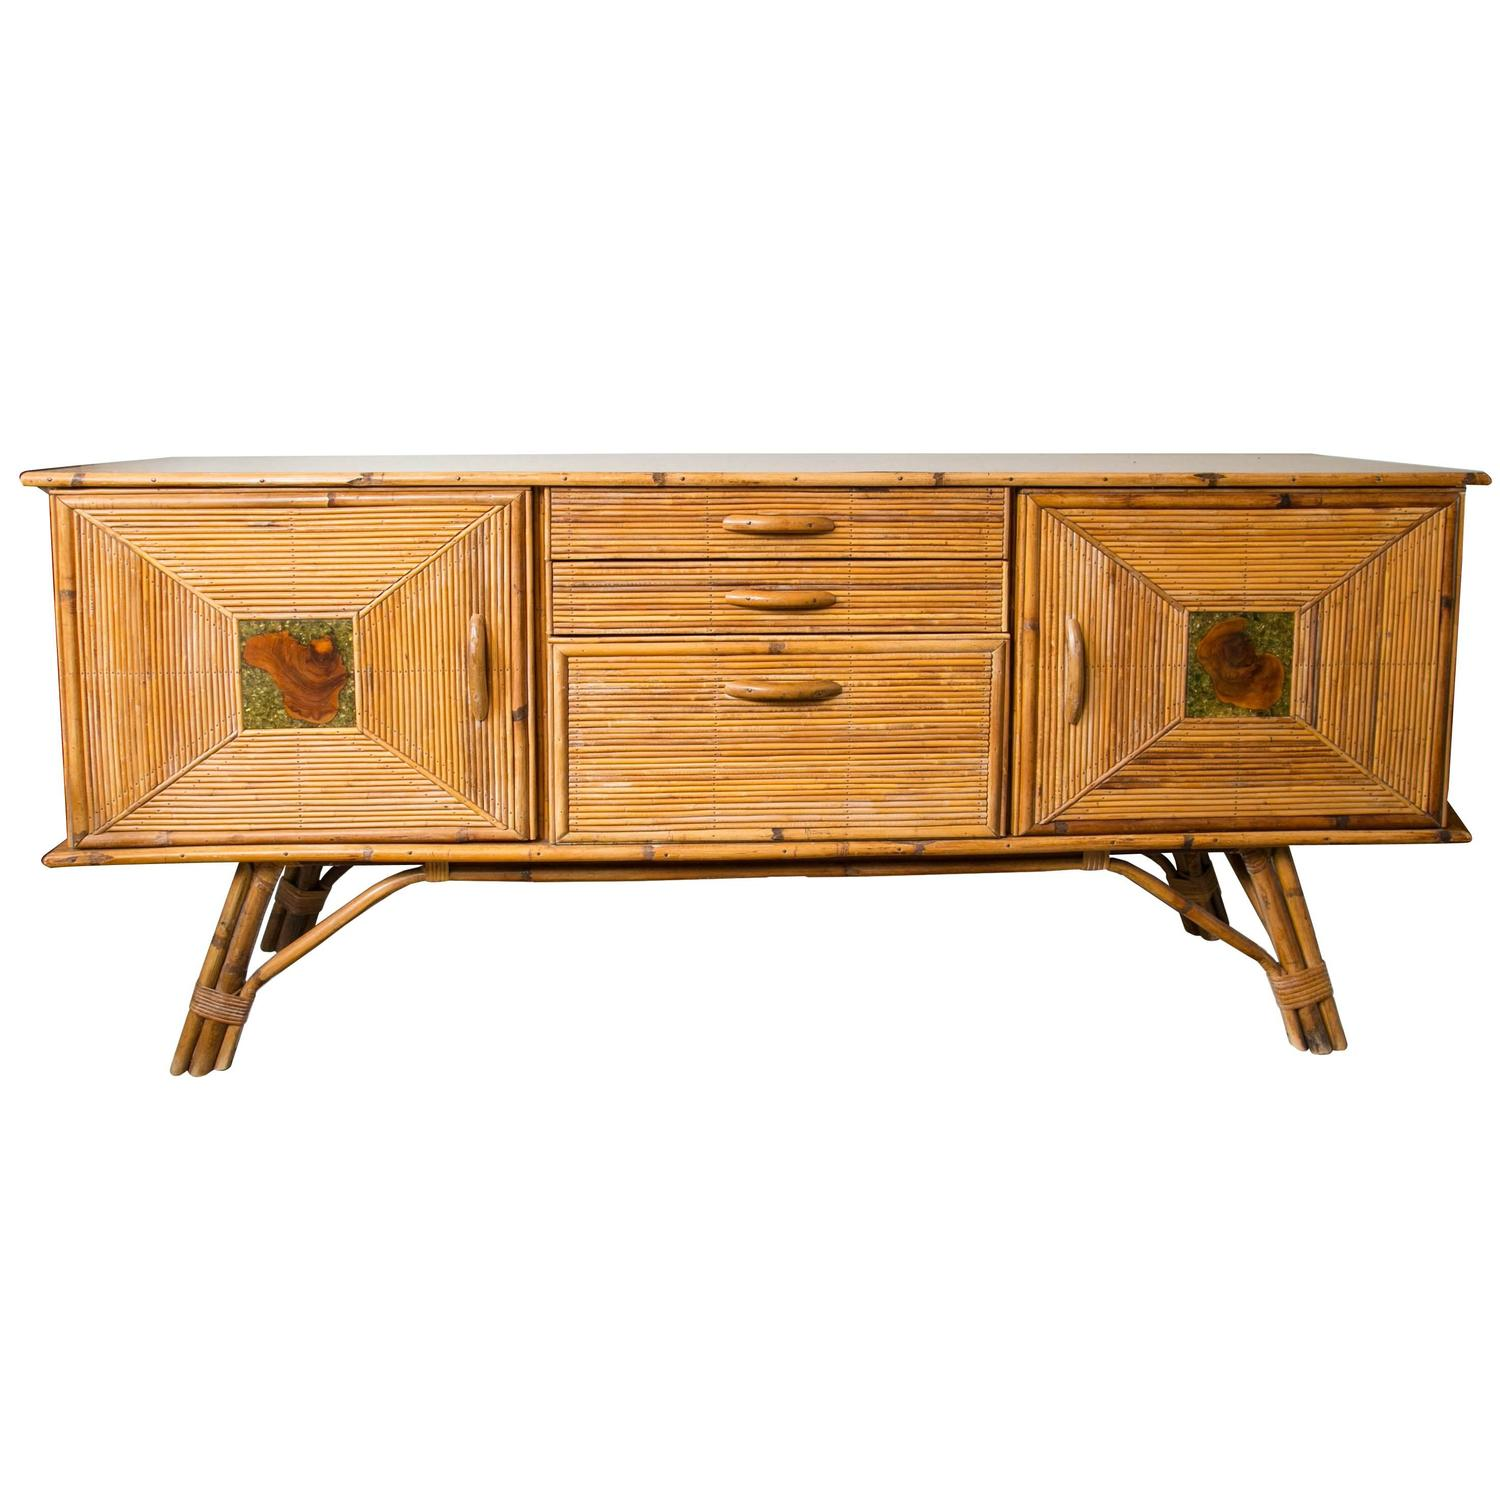 Vintage oak and rattan sideboard for sale at 1stdibs for Sideboard rattan